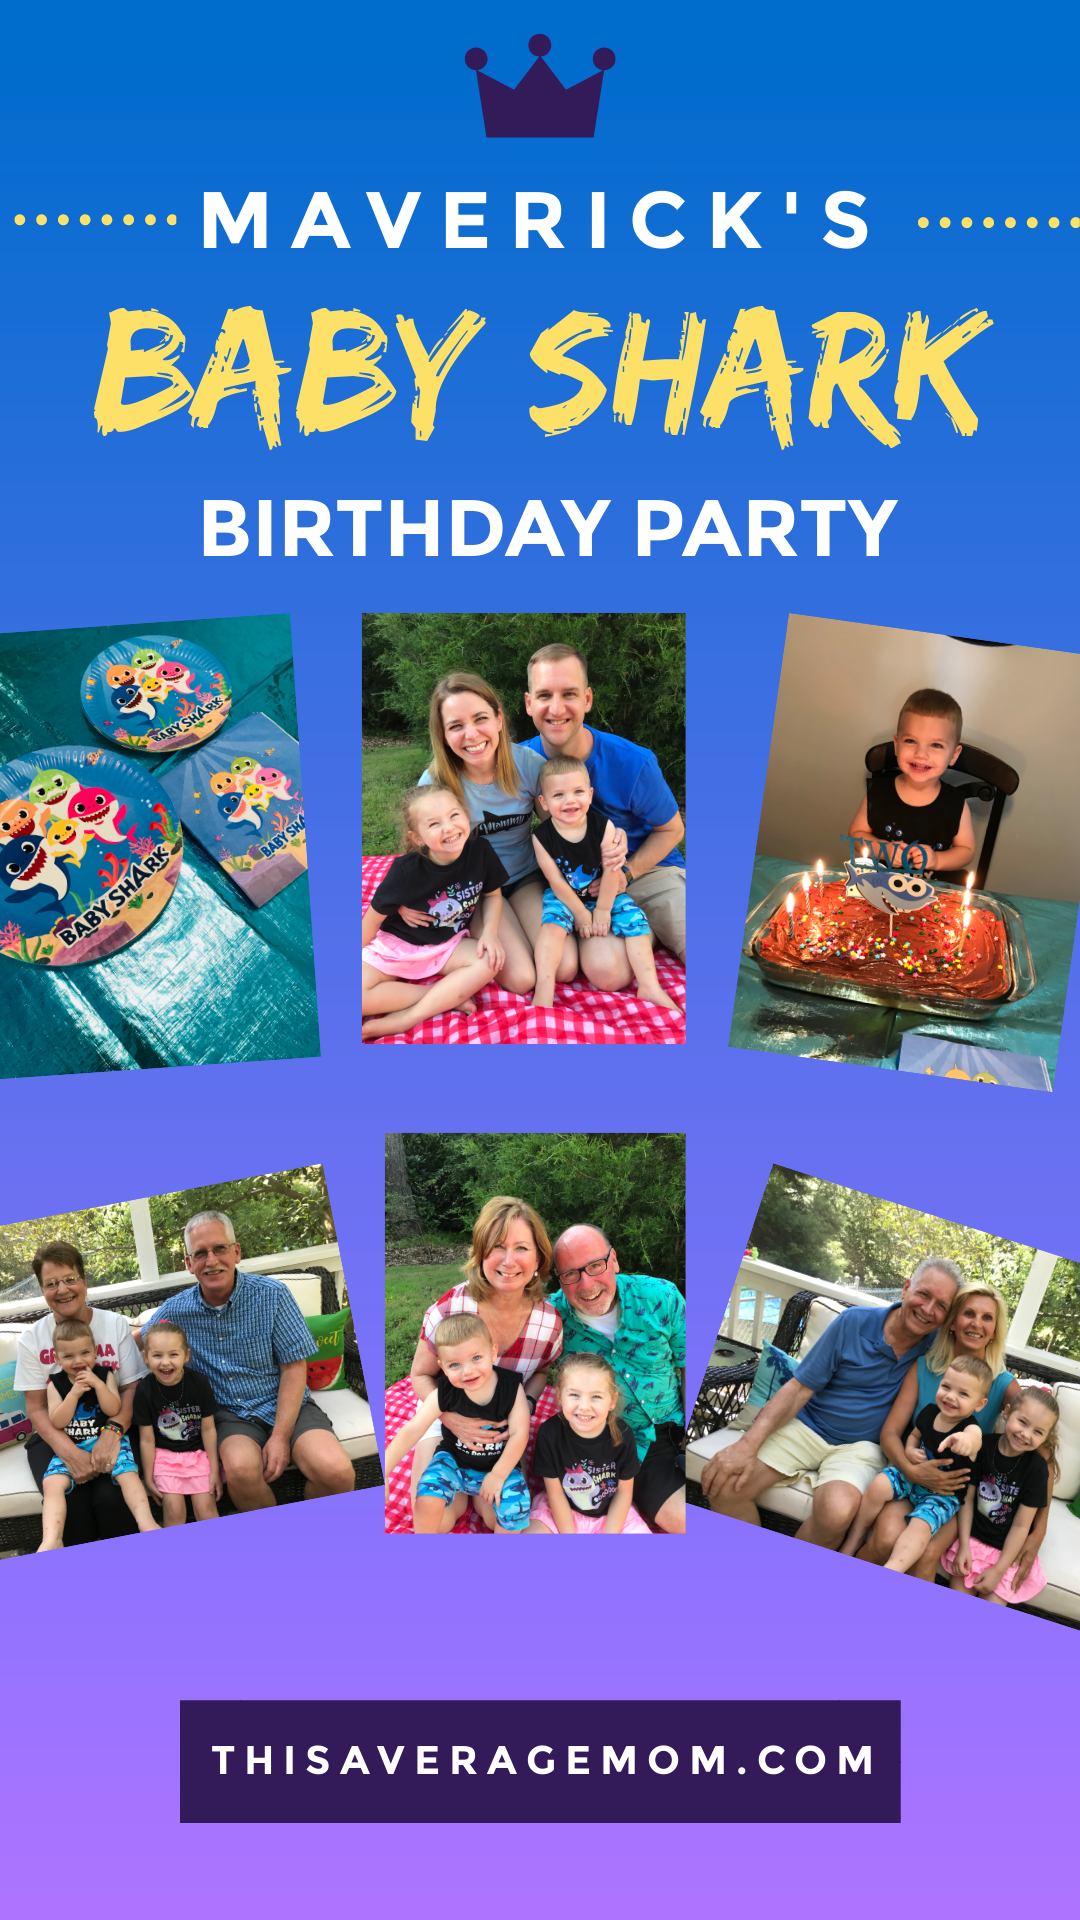 Did you know you can order everything you need for a simple Baby Shark birthday party online? Well, you can! We did, and our 2 year old loved his Baby Shark party, outfit, and day! #babyshark #partyplanning #birthdayparty